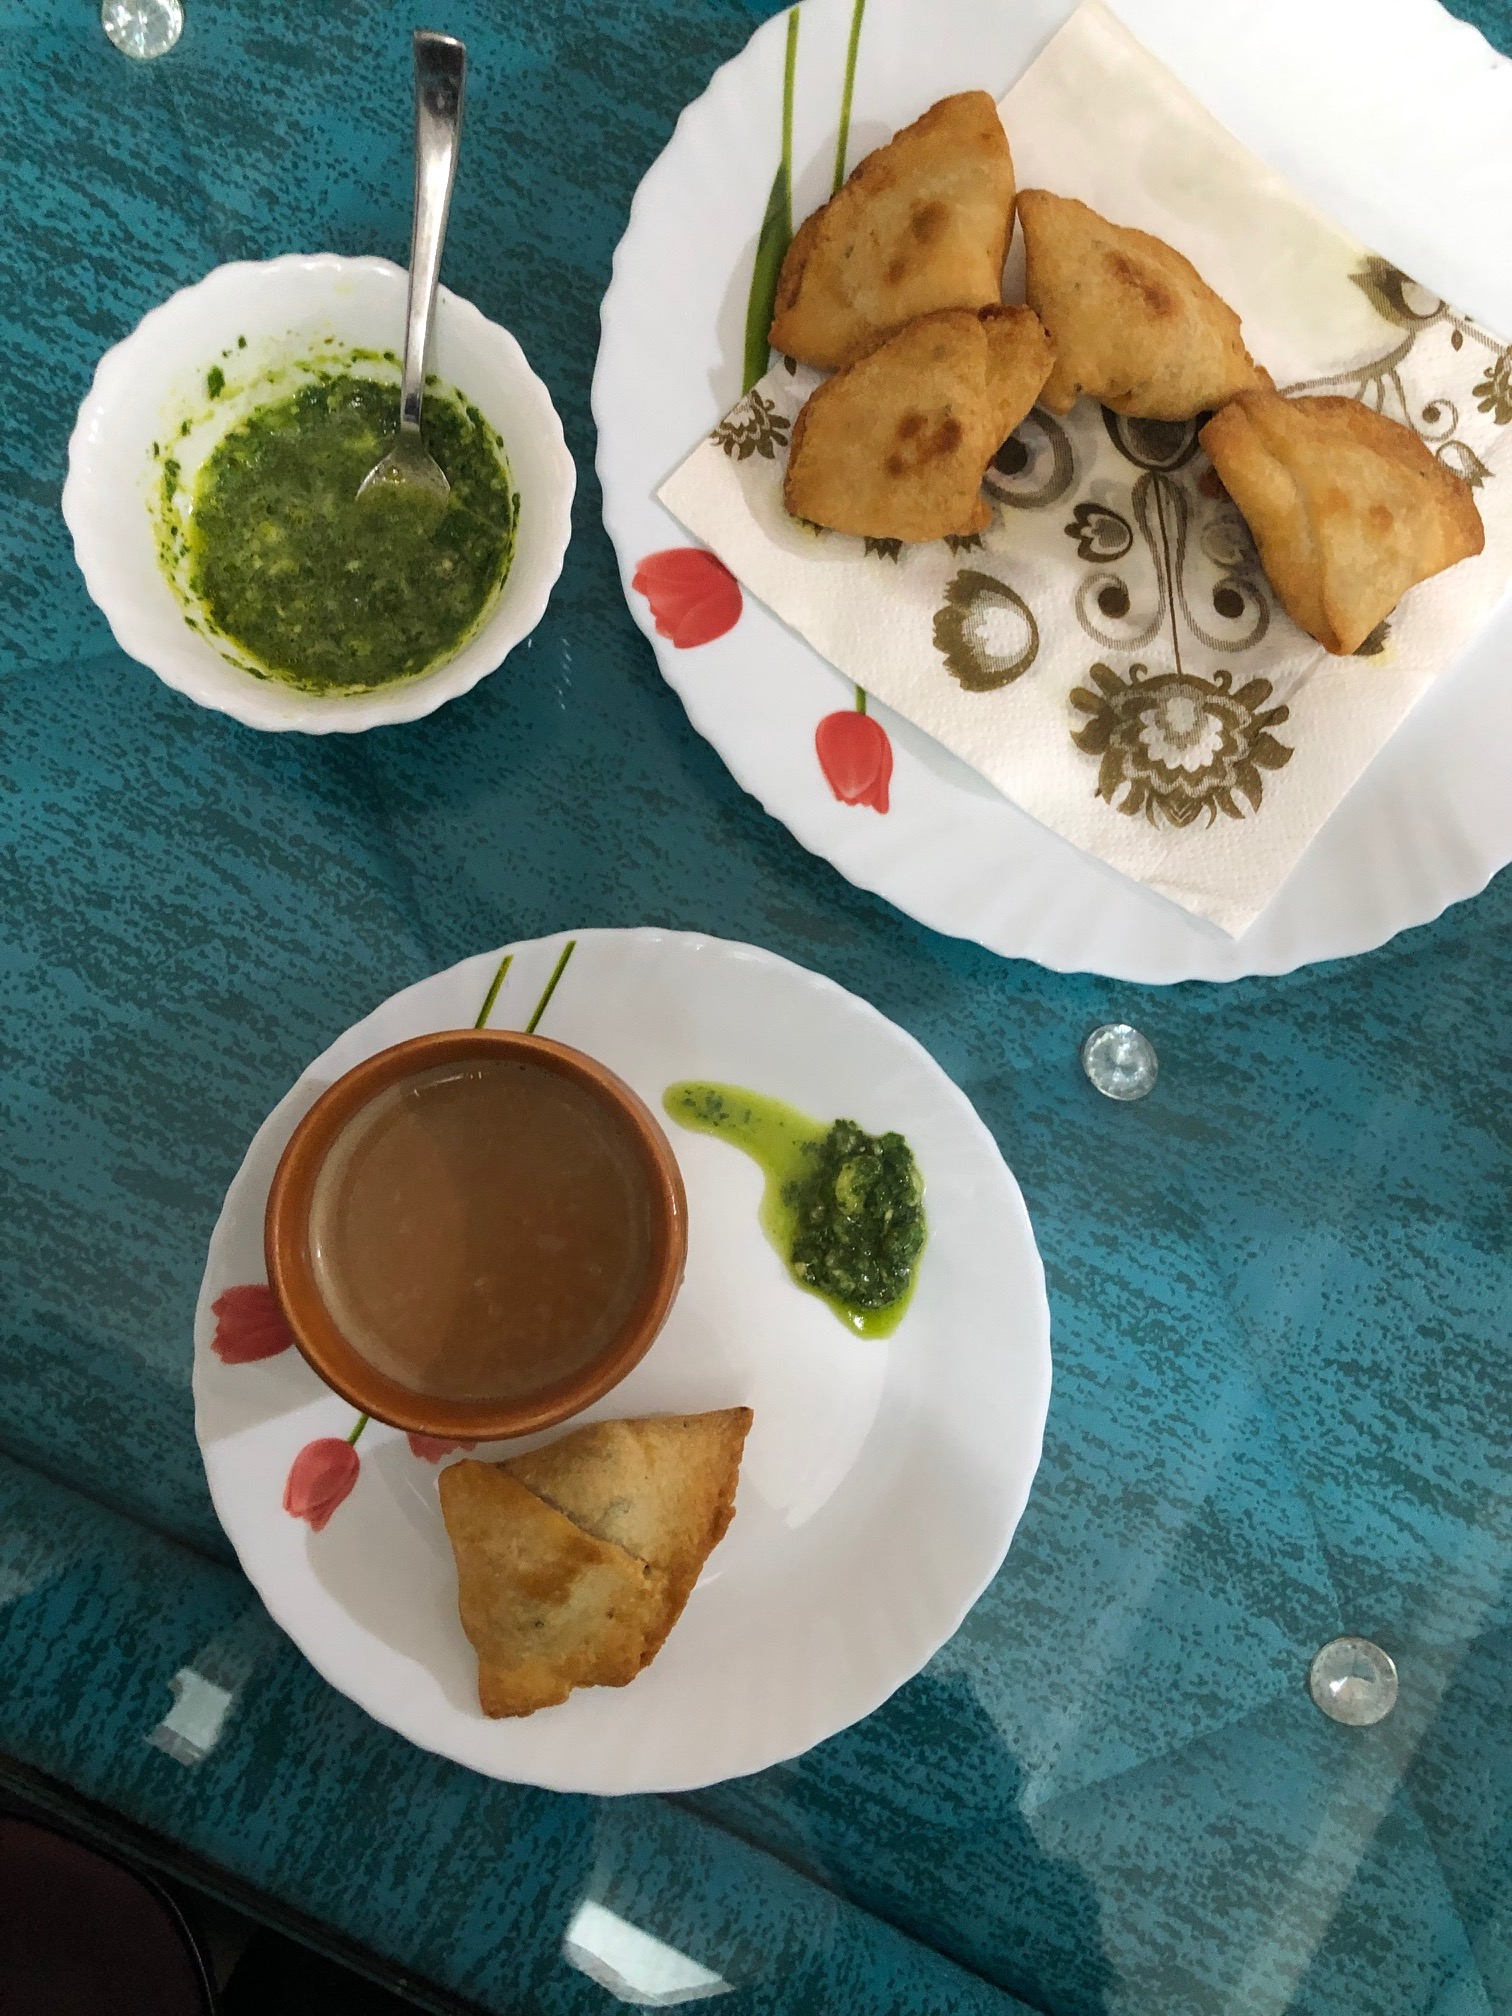 Chai Tea, Samosas, and Churtney from Cooking Class, Delhi